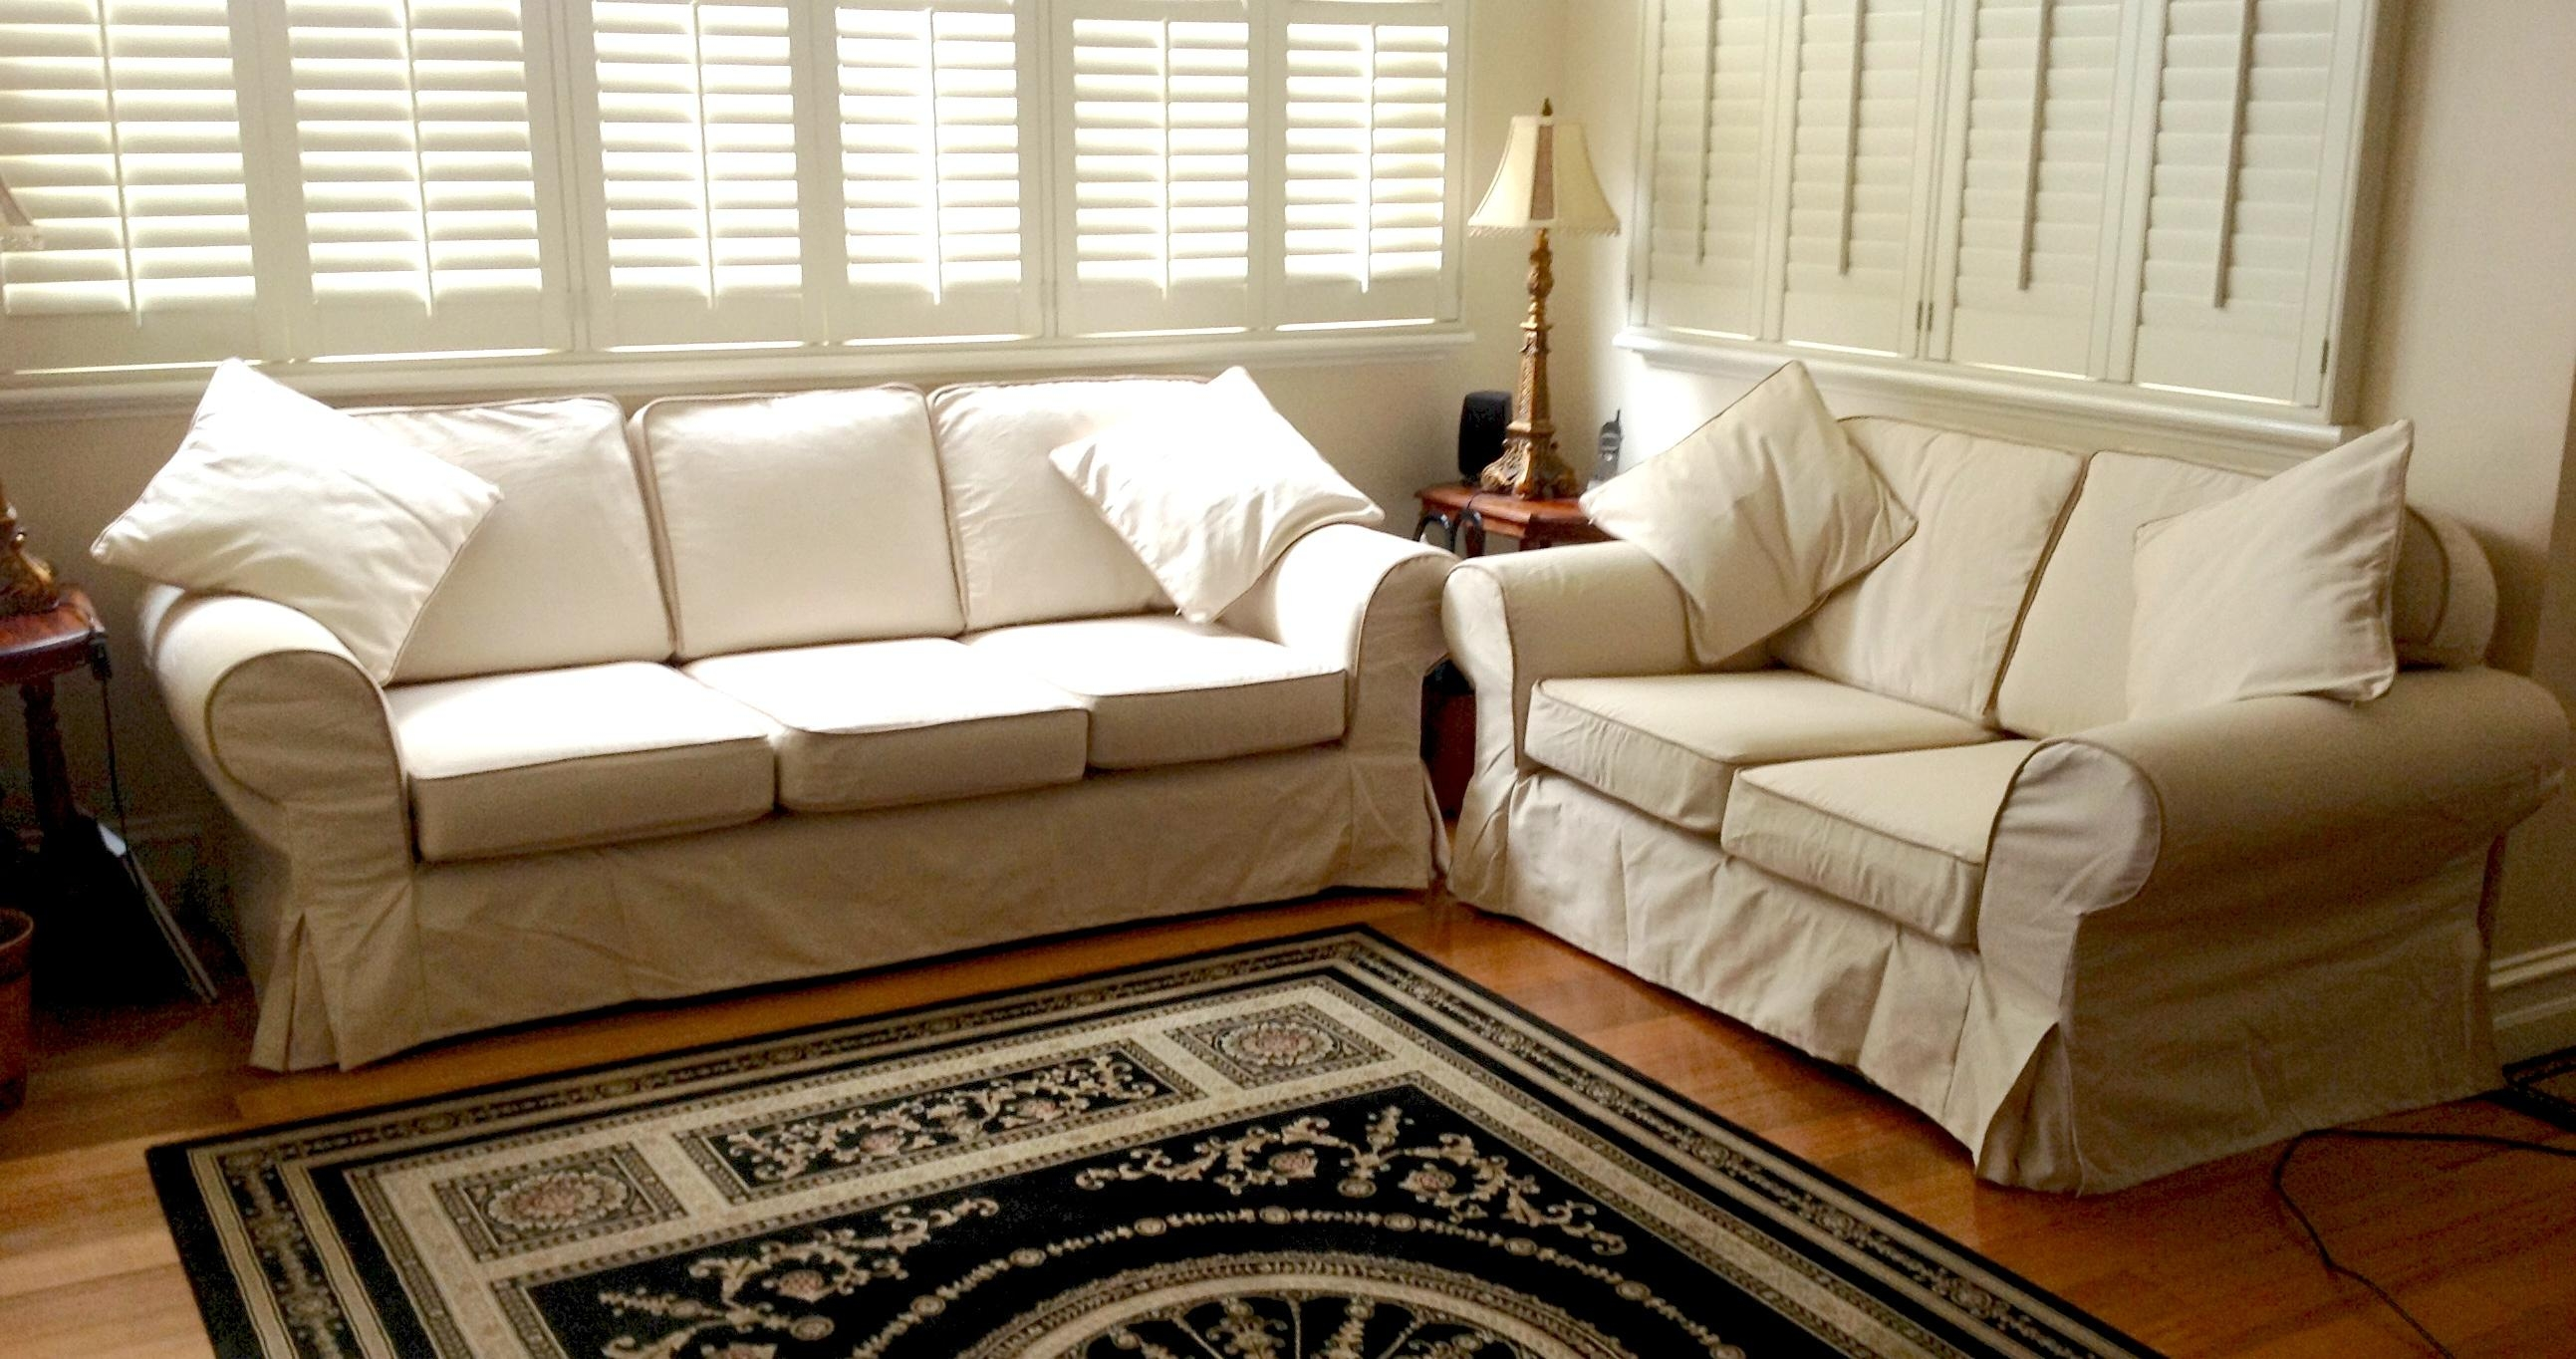 Custom Slipcovers And Couch Cover For Any Sofa Online For Sofas With Removable Covers (View 19 of 20)